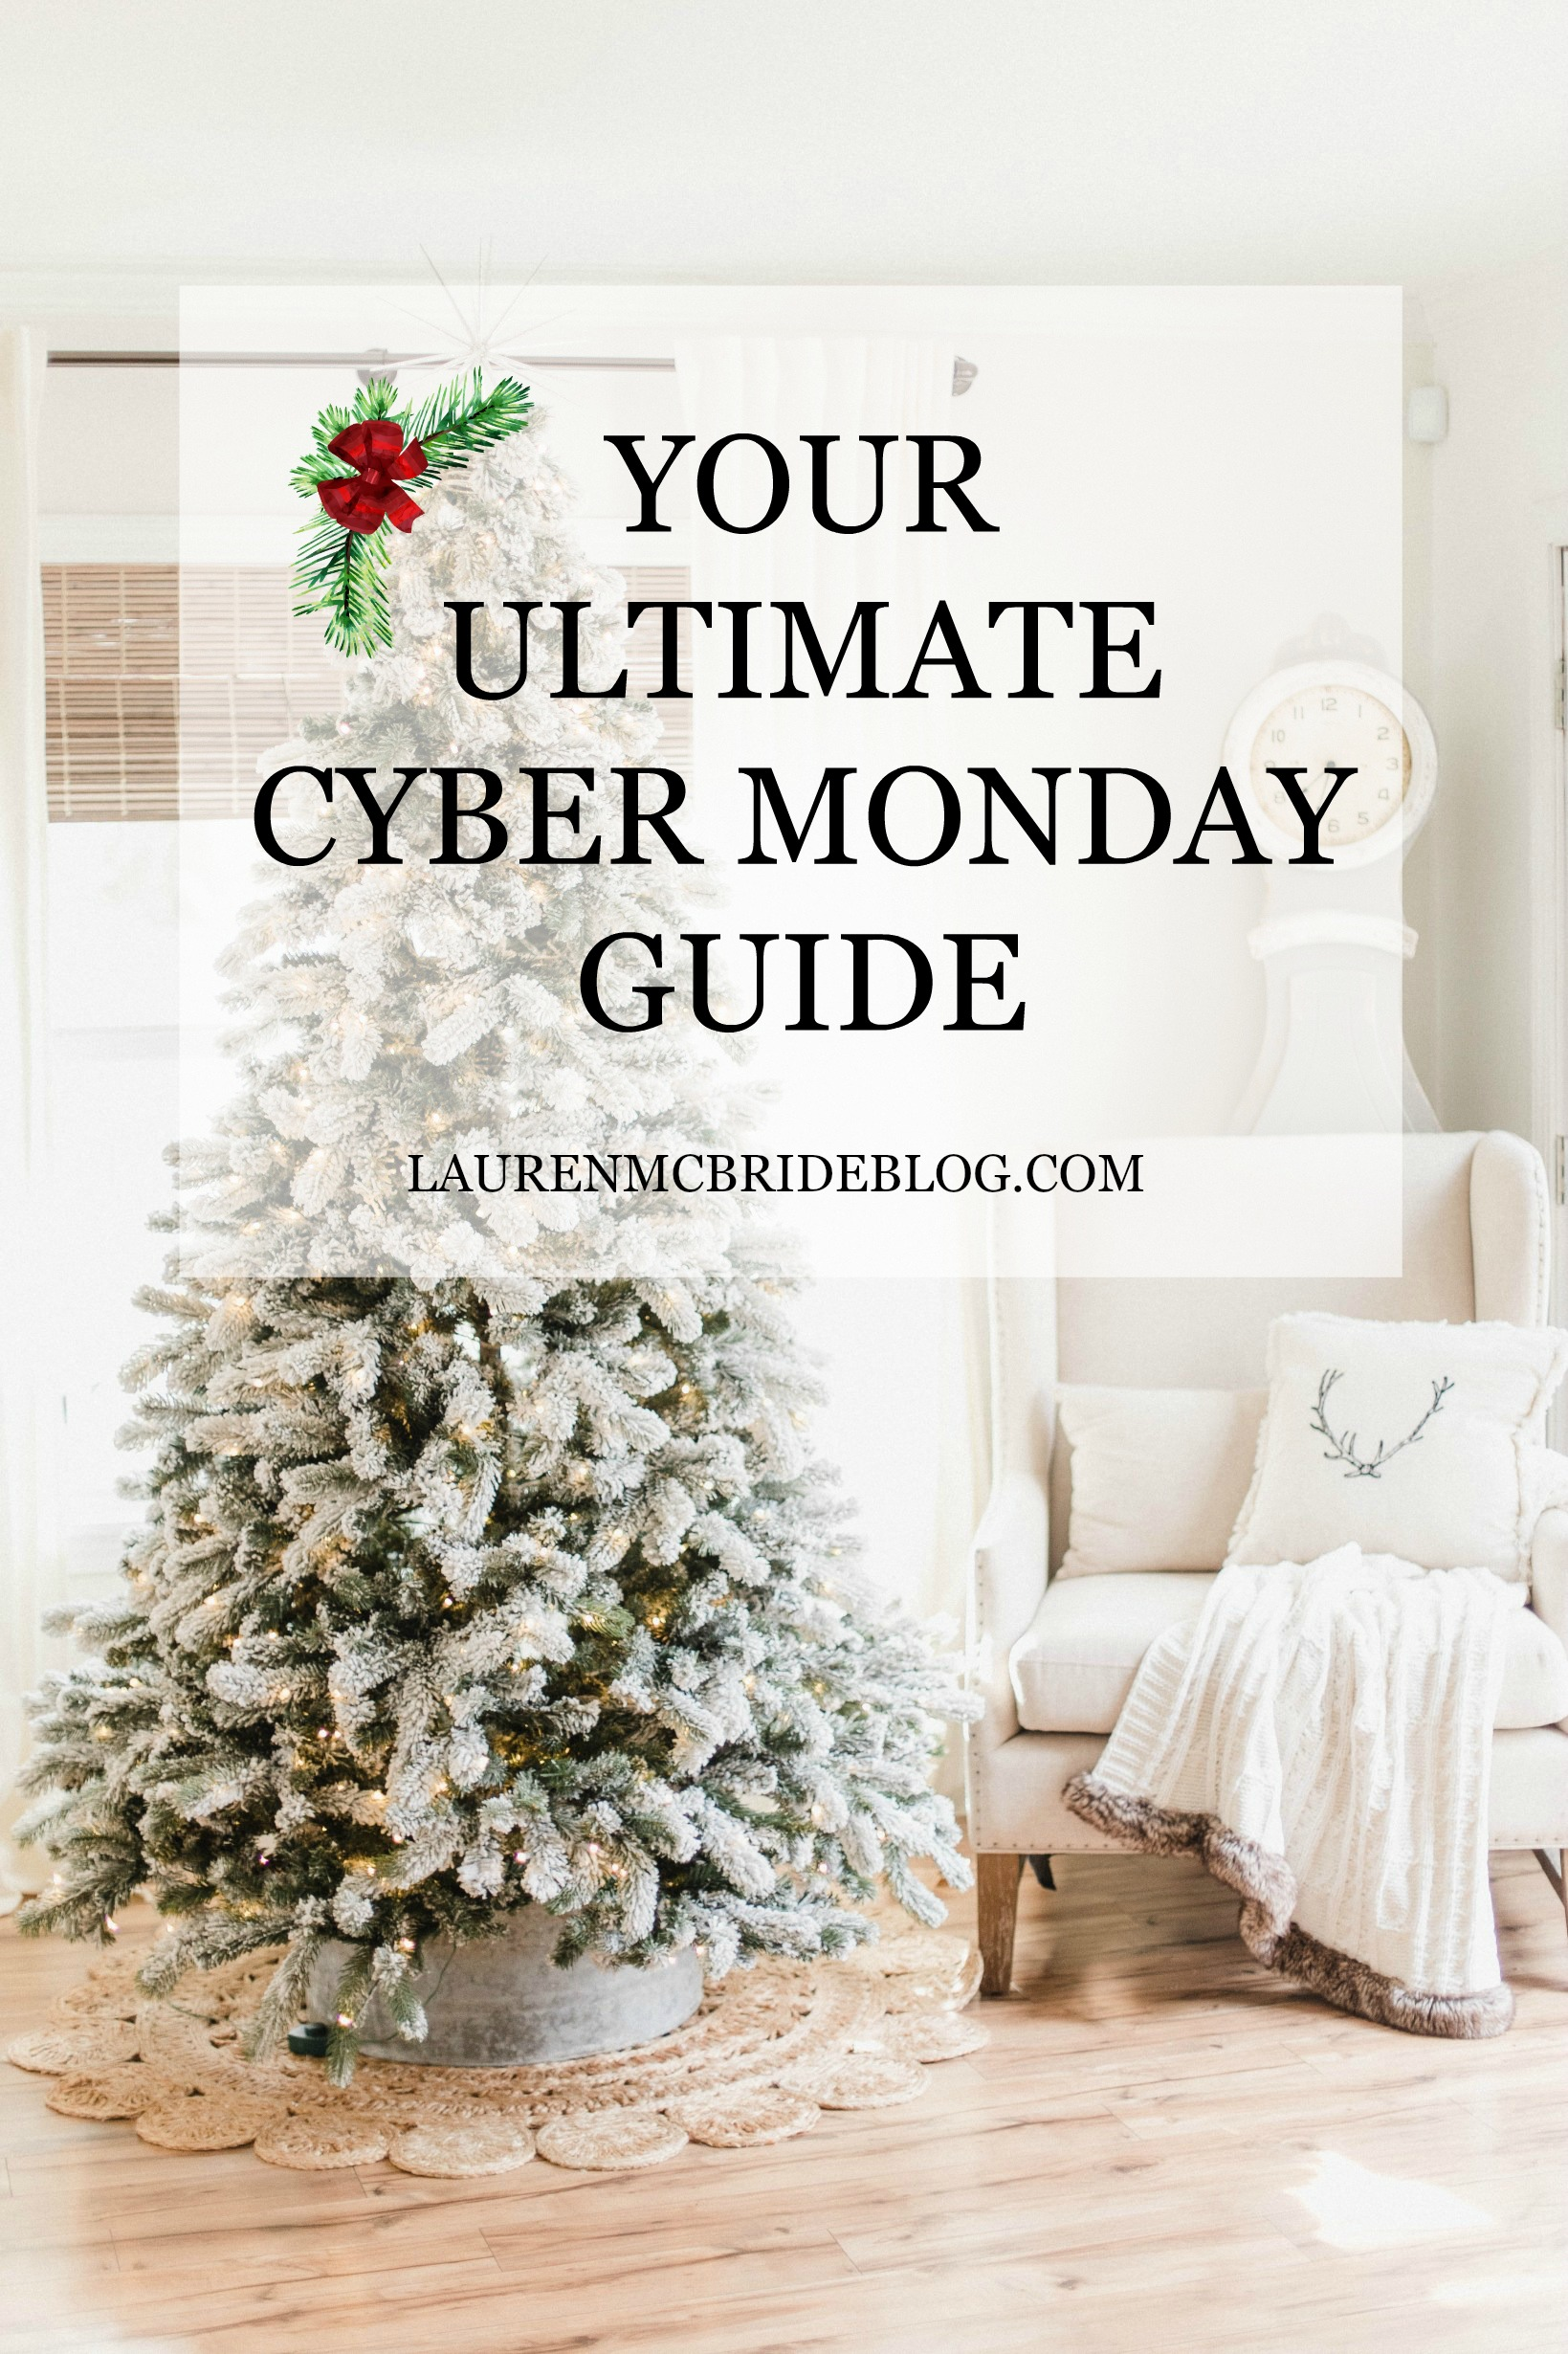 Looking for the ultimate Cyber Monday sale guide? Connecticut life and style blogger Lauren McBride has it all right here!